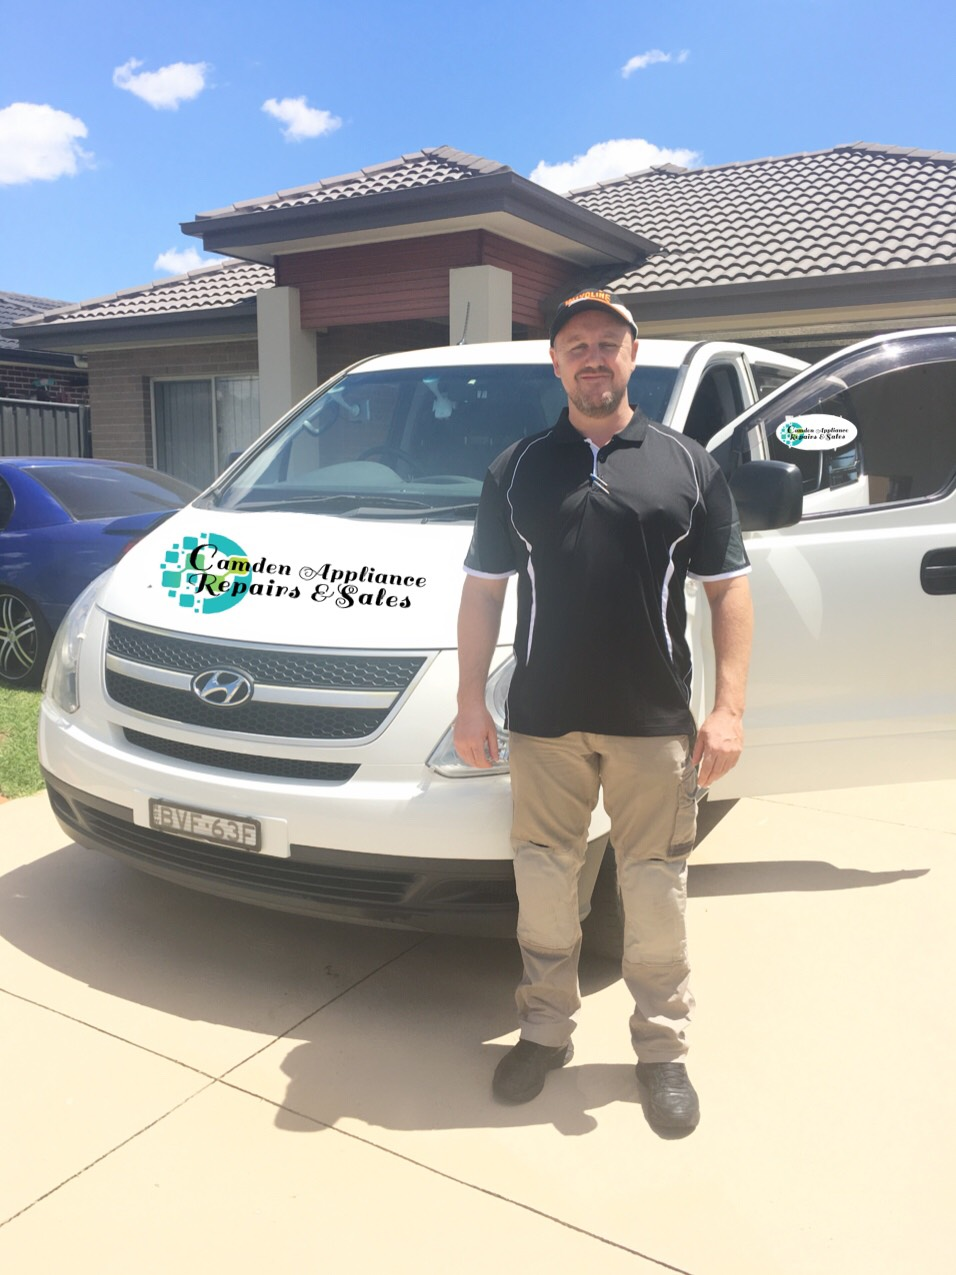 About Camden Appliance Repairs And Sales Sydney Fisher